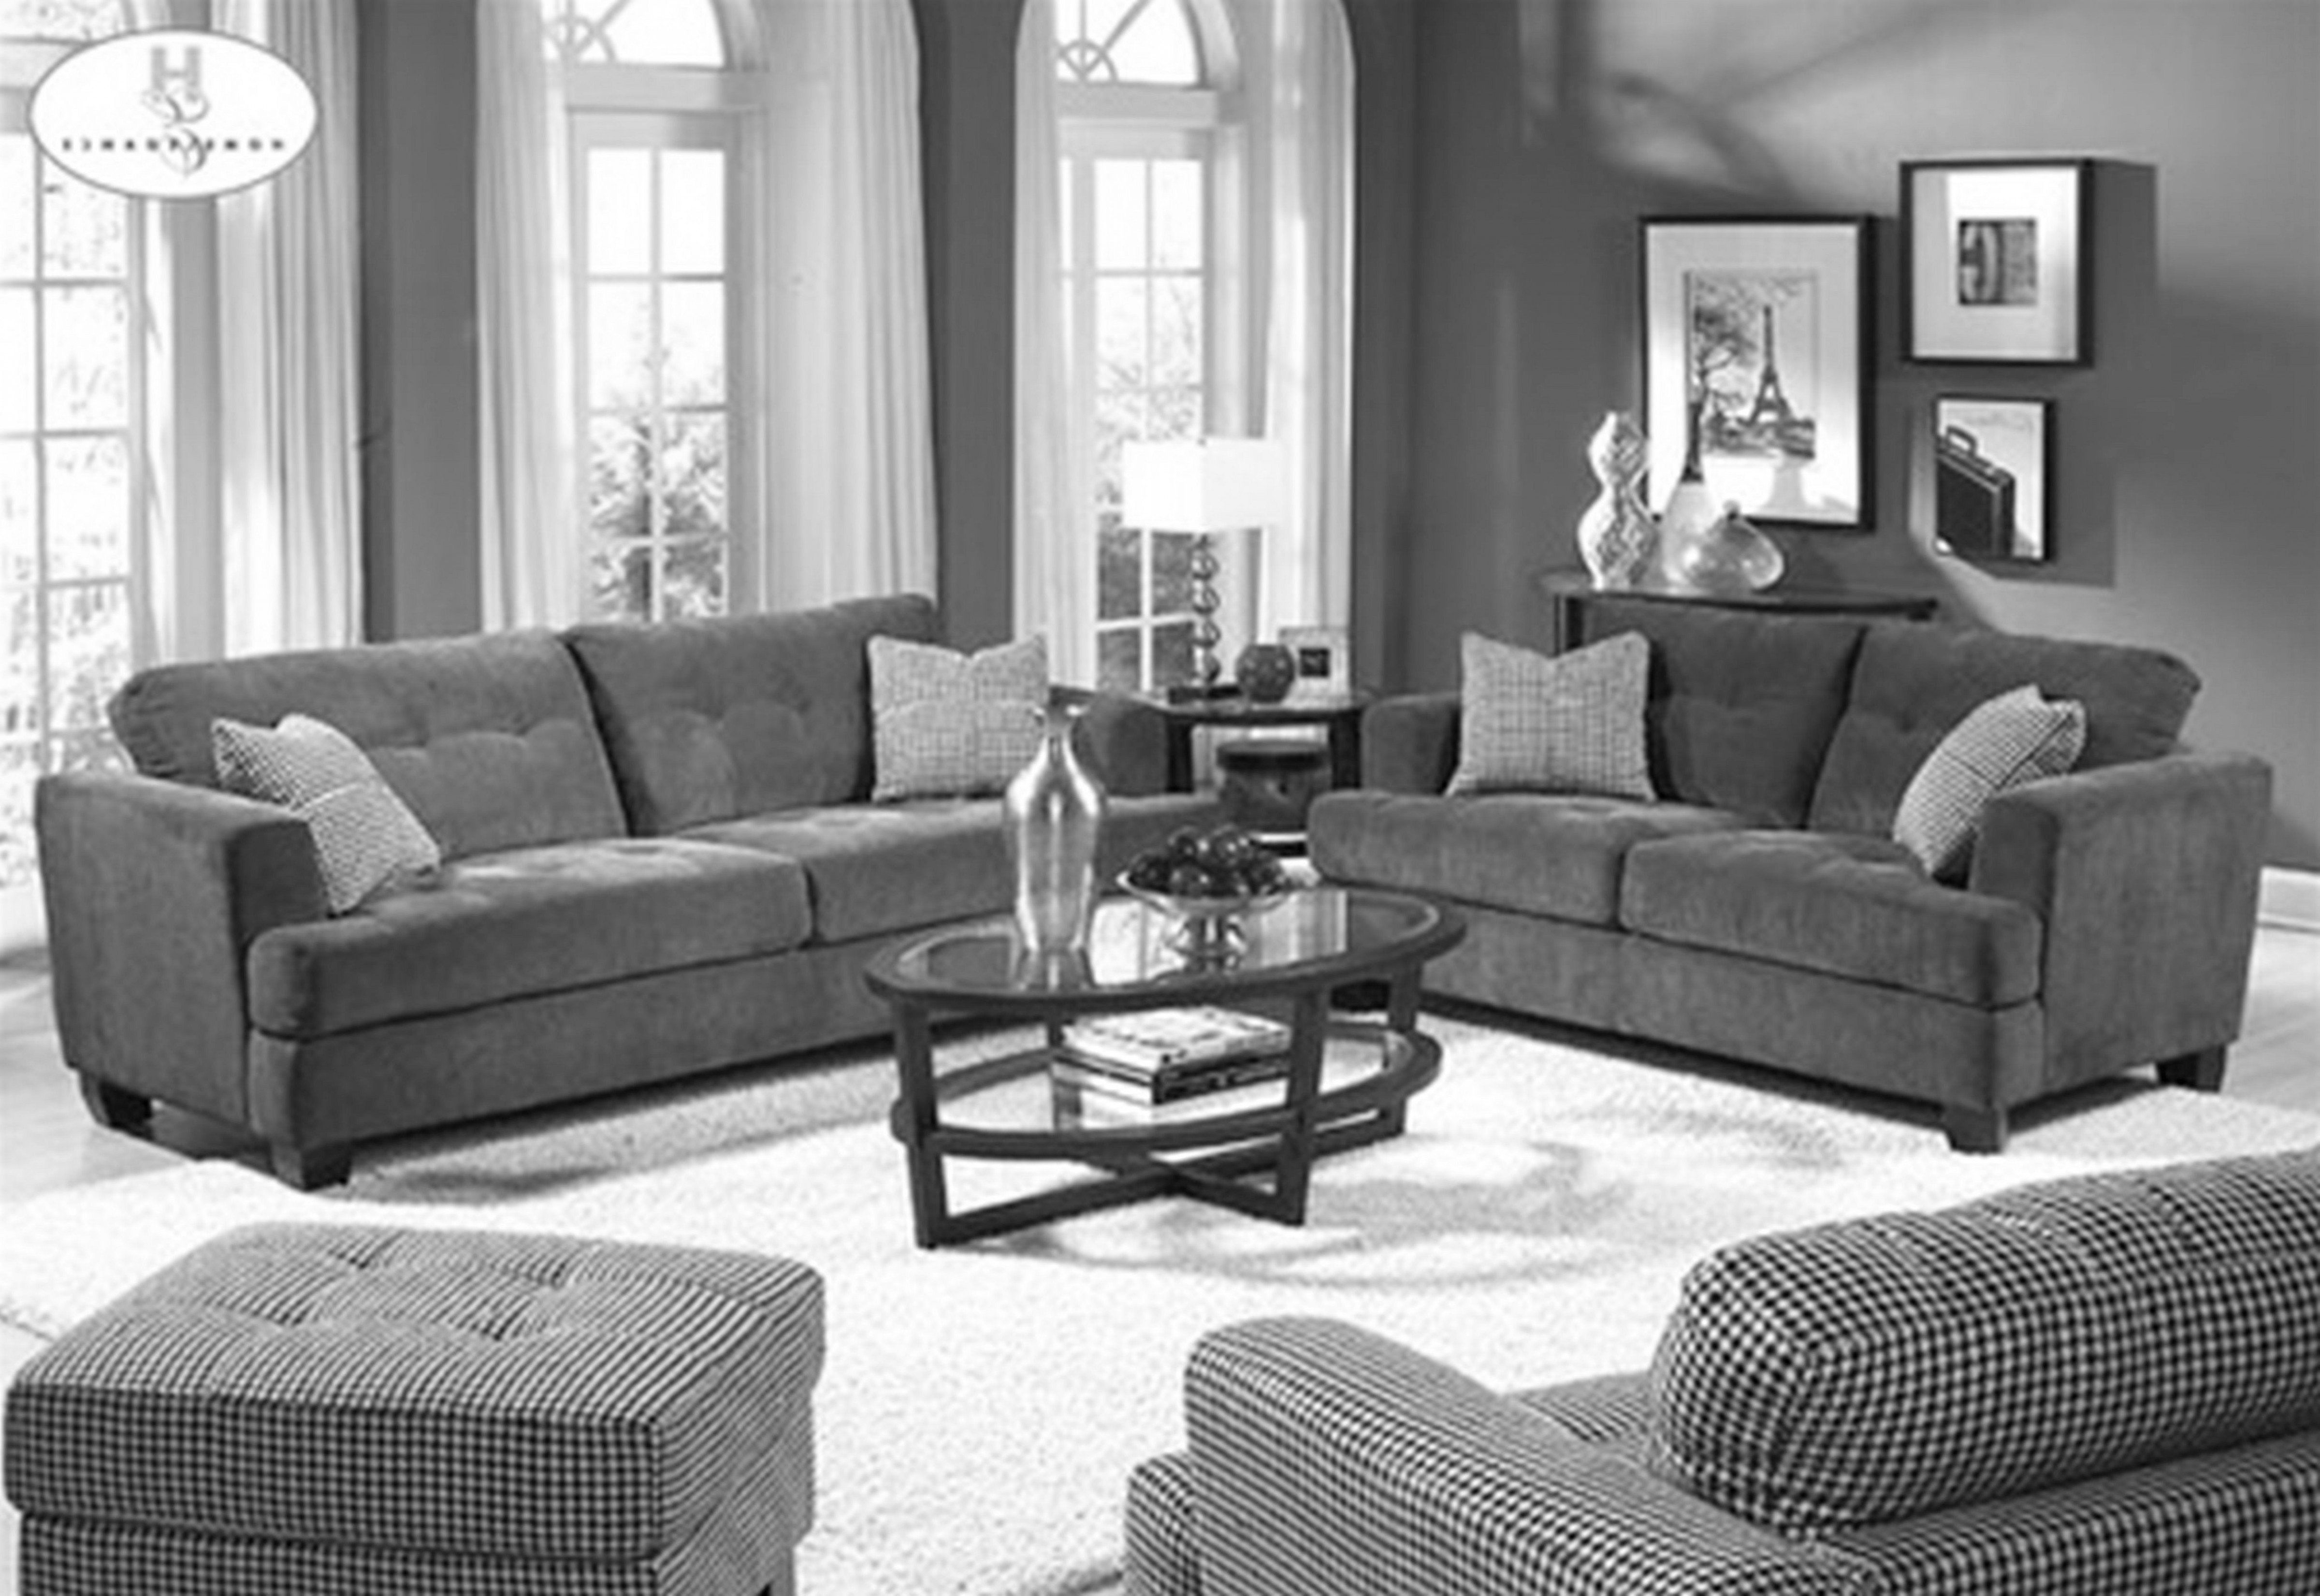 Living Room Center Table Decoration Ideas Unique 21 Stunning Rustic Sofa Table Ideas Picture In 2020 Living Room White Black Living Room Living Room Sofa